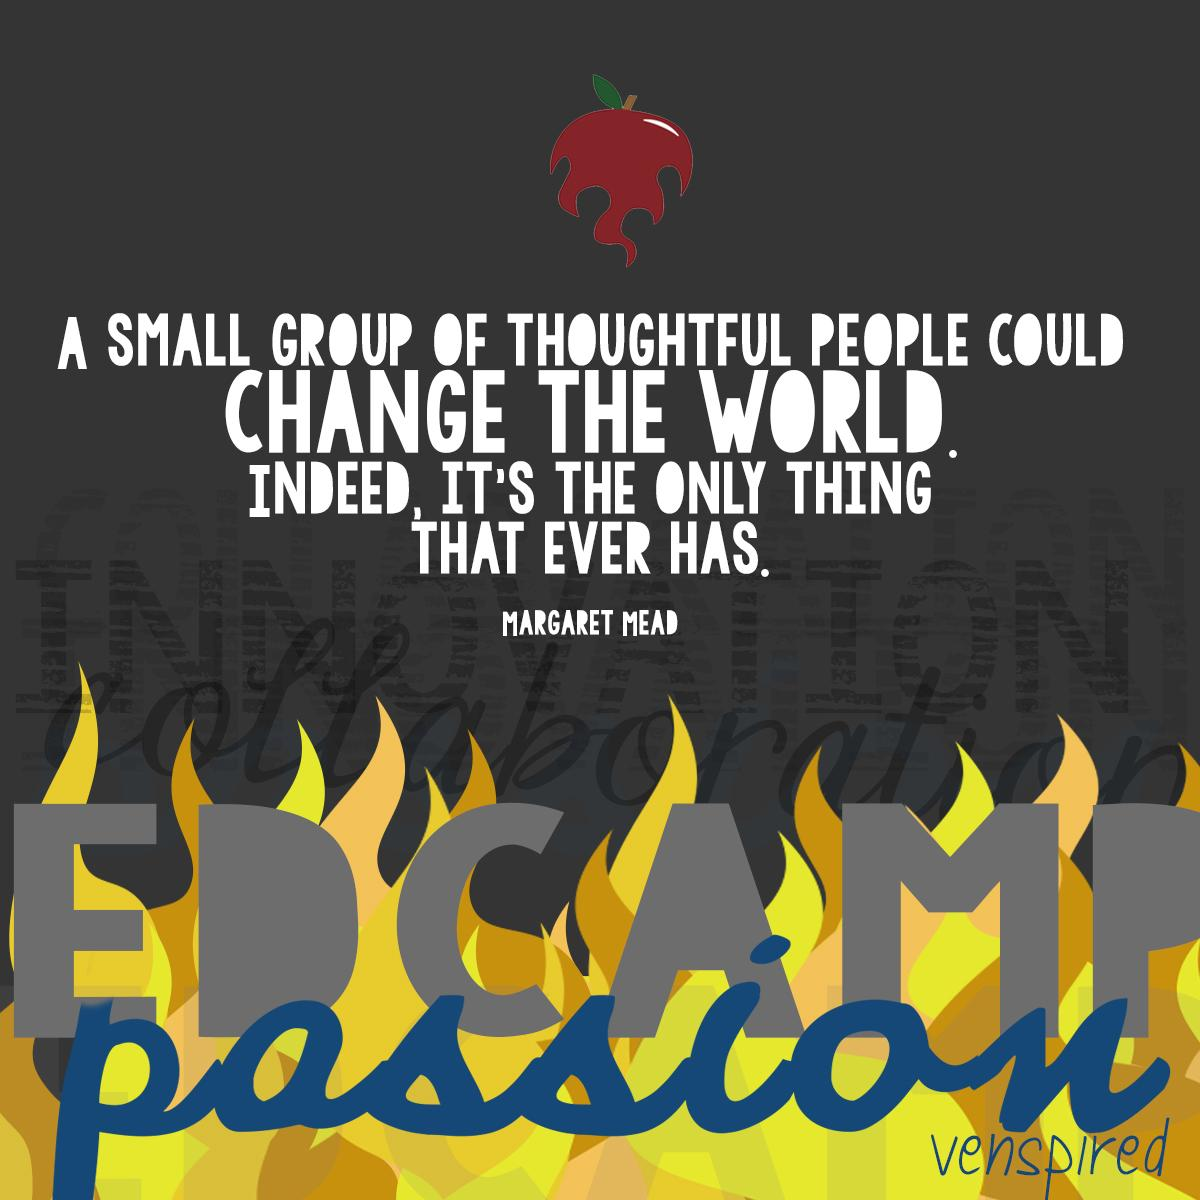 #Edcamp is that little reminder, in spite of  odds against us, we can make education better. Together.  #satchat http://t.co/HDMsPUPL4B